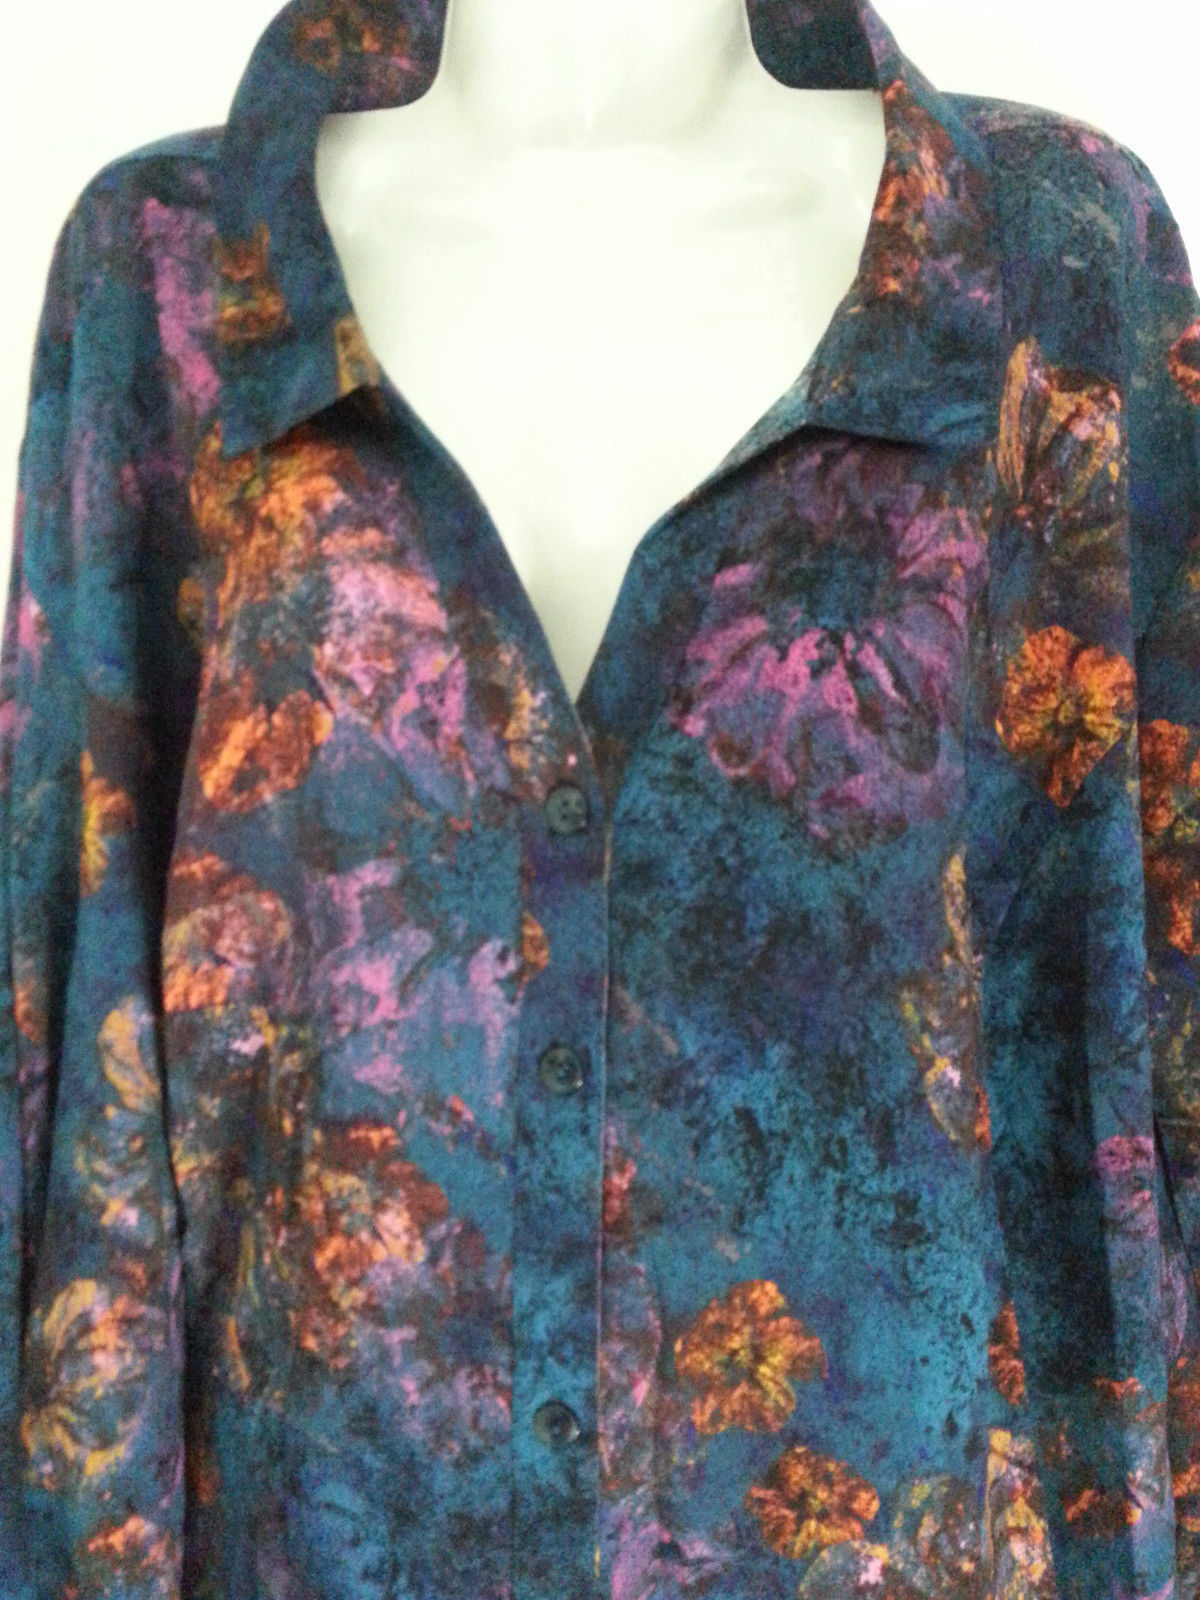 ca95cc6be8a CATHERINES BUTTON DOWN LONG SLEEVE SHIRT 2XP 22 24 PLUS SIZE PETITE TOP  BLOUSE